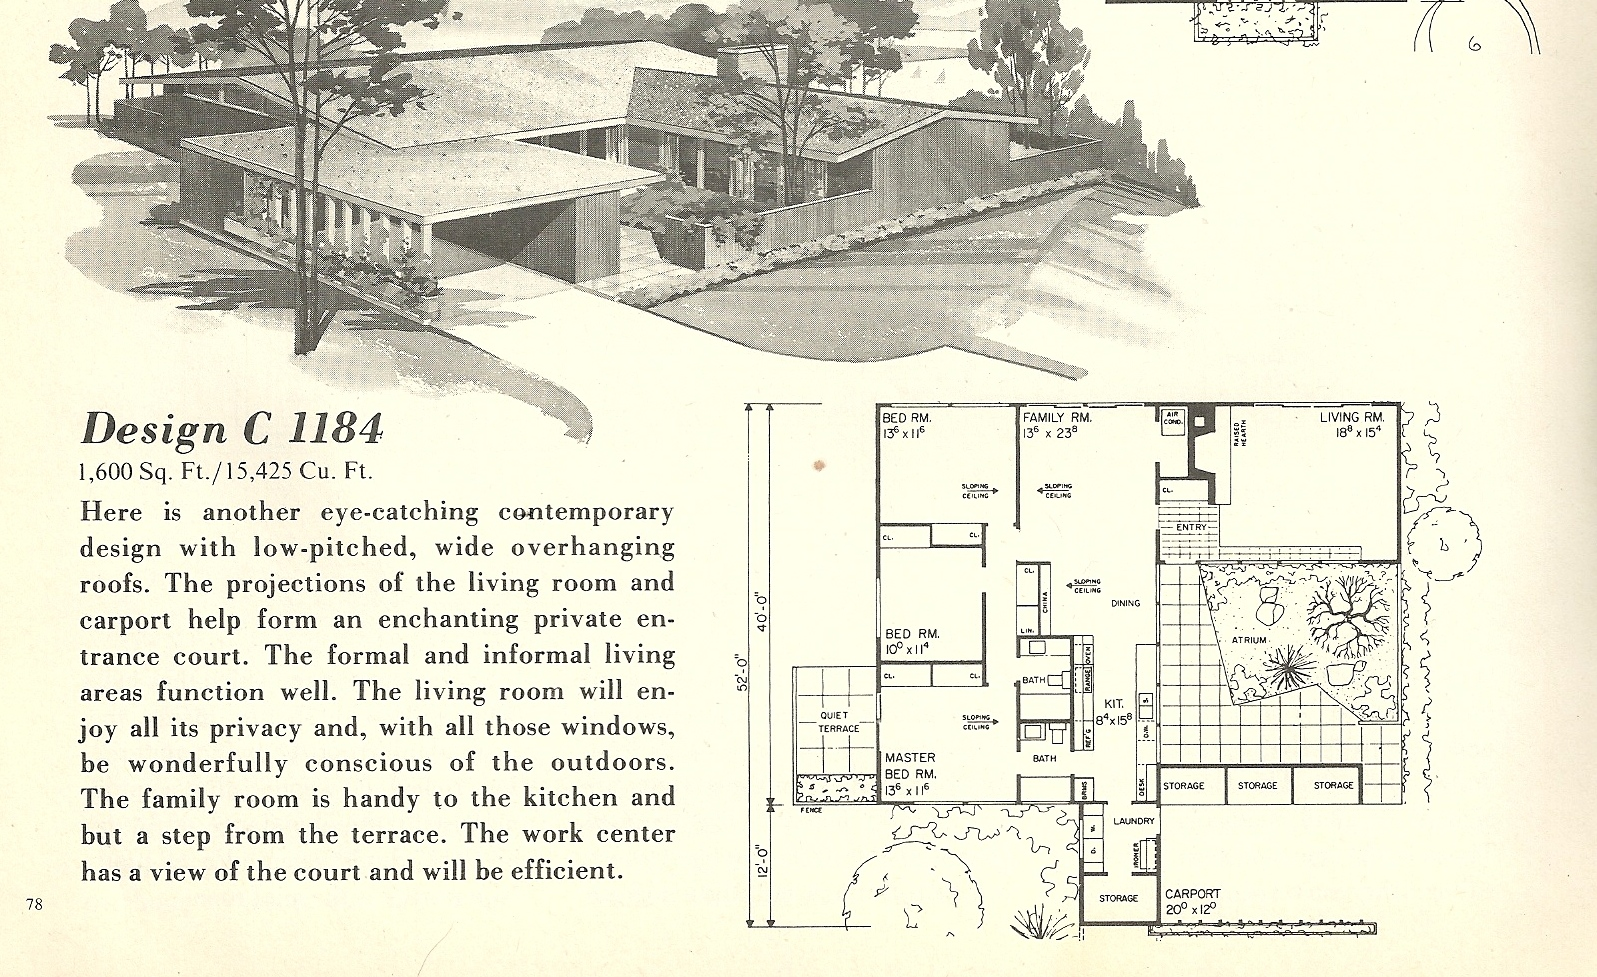 Vintage house plans 1184 antique alter ego 1960s ranch style house plans